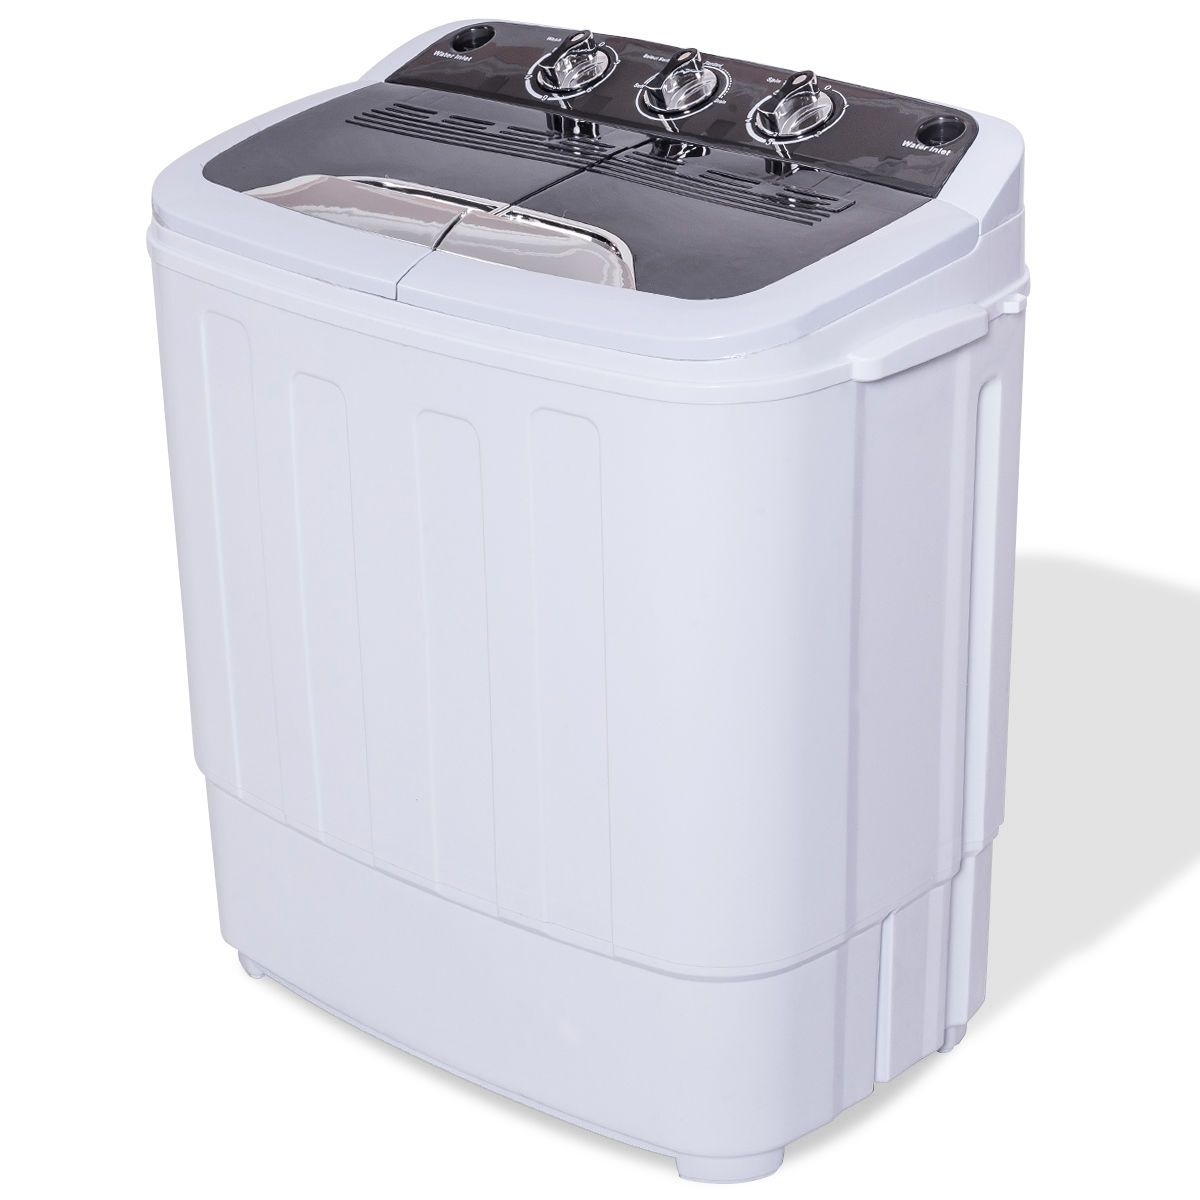 This Twin Tub Travel Washing Machine Is Portable And